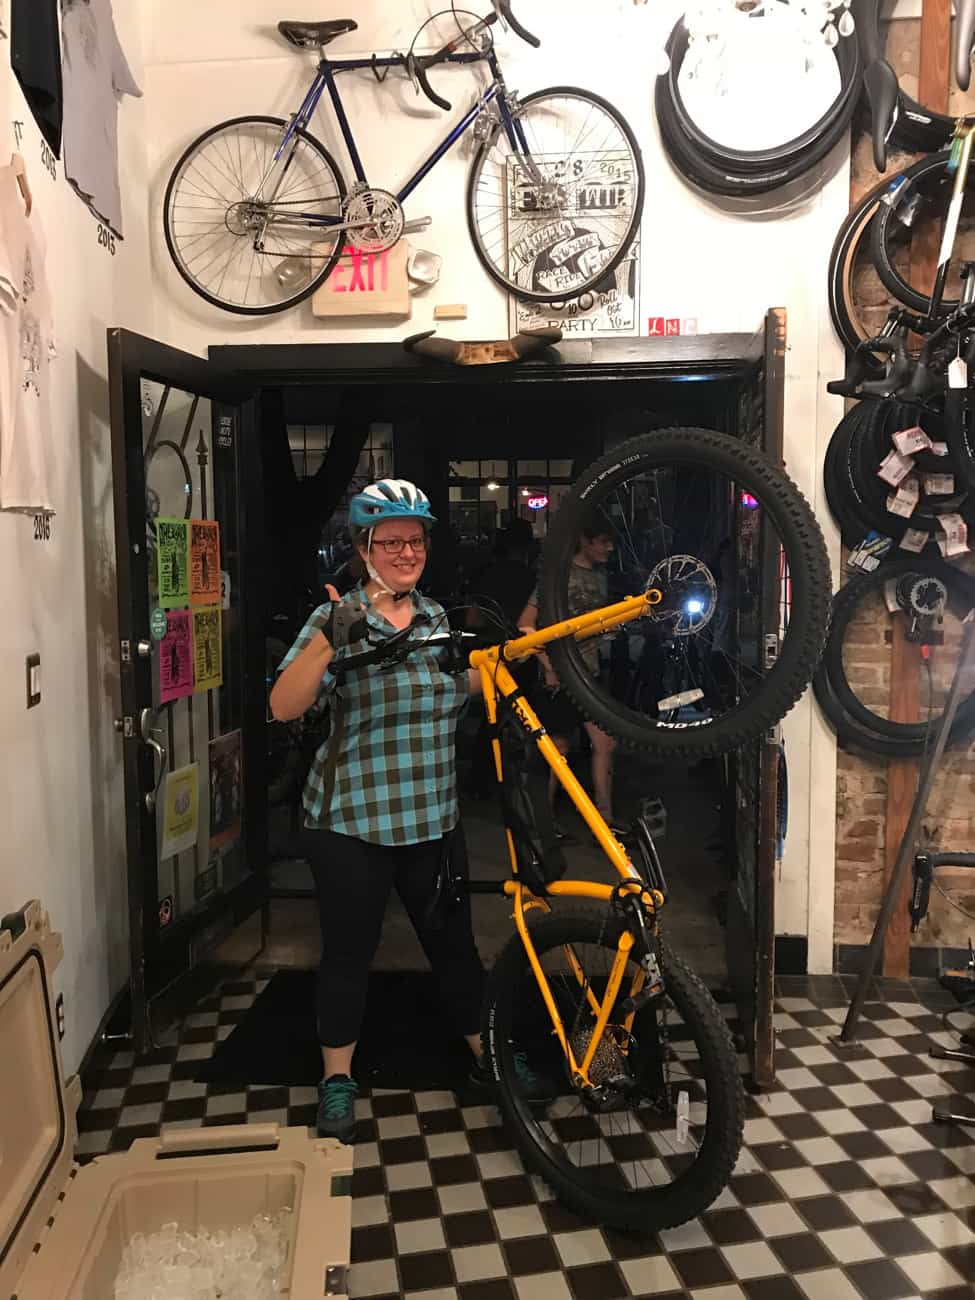 Front view of a cyclist giving a thumbs up at a bike shop, while holding a bike with front wheel popped off the ground